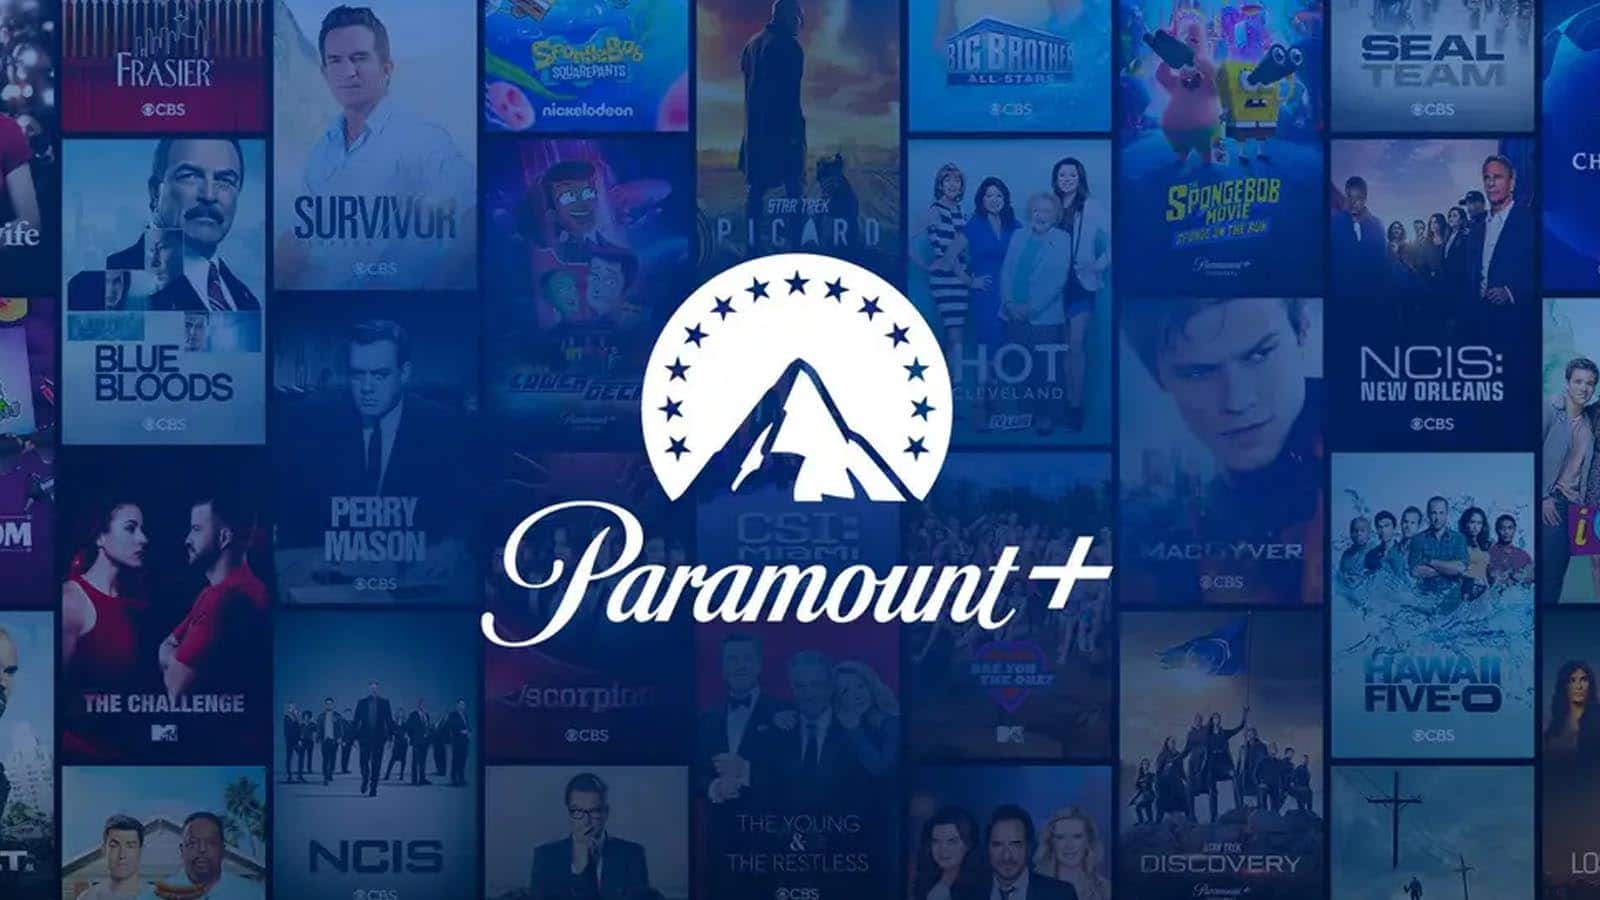 Paramount+ – Limited time: Try 1 Month FREE. Offer ends 3/31. Plans start at $5.99/month. Cancel anytime.